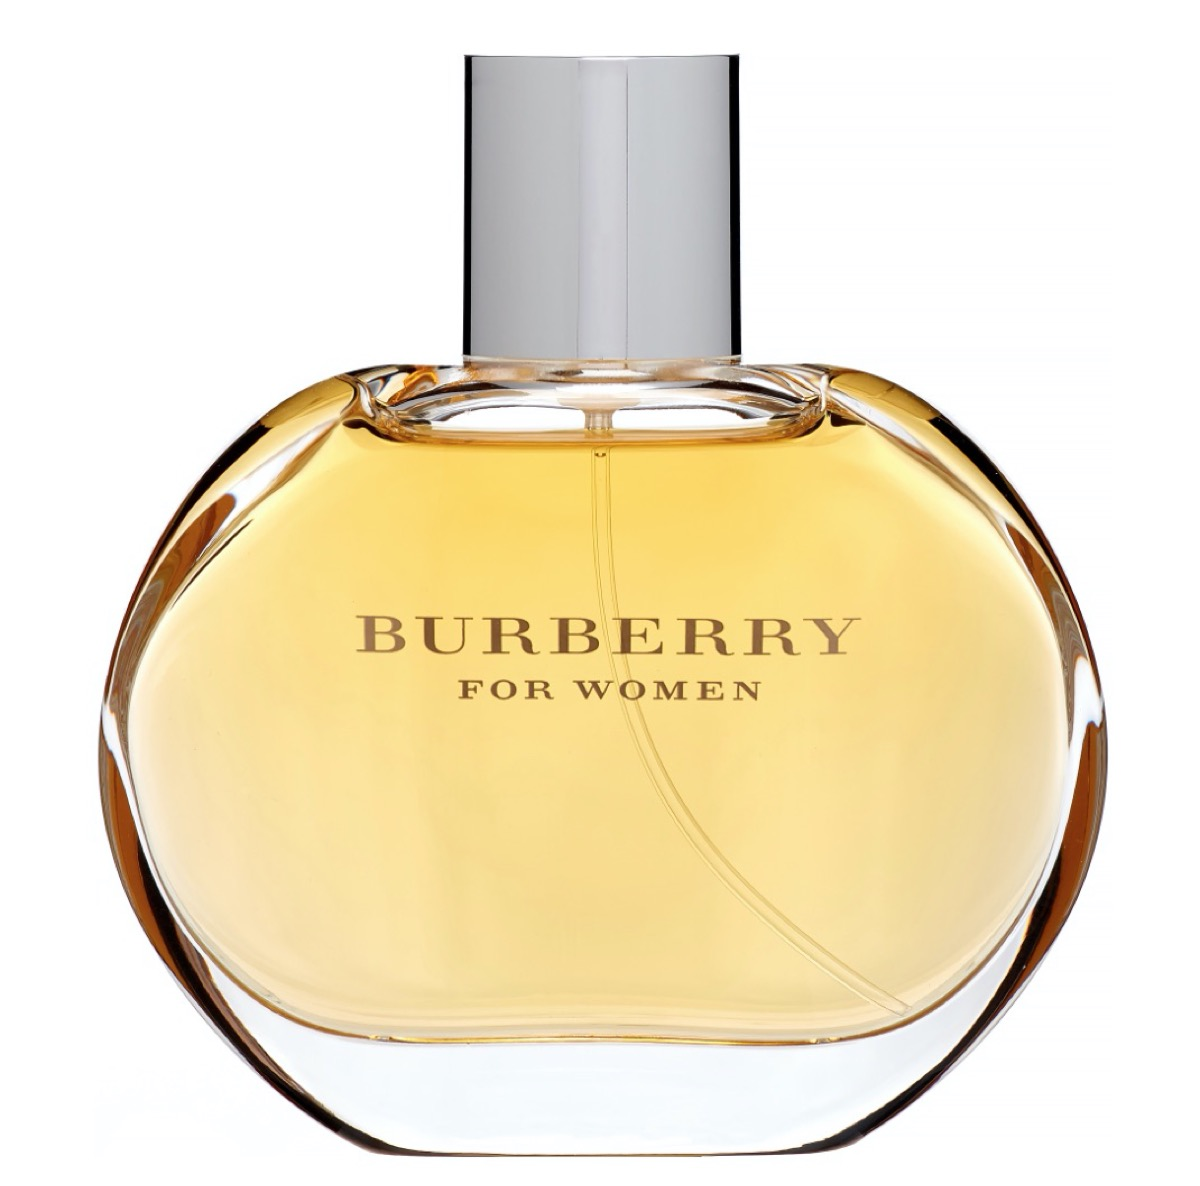 rounded bottle of burberry perfume